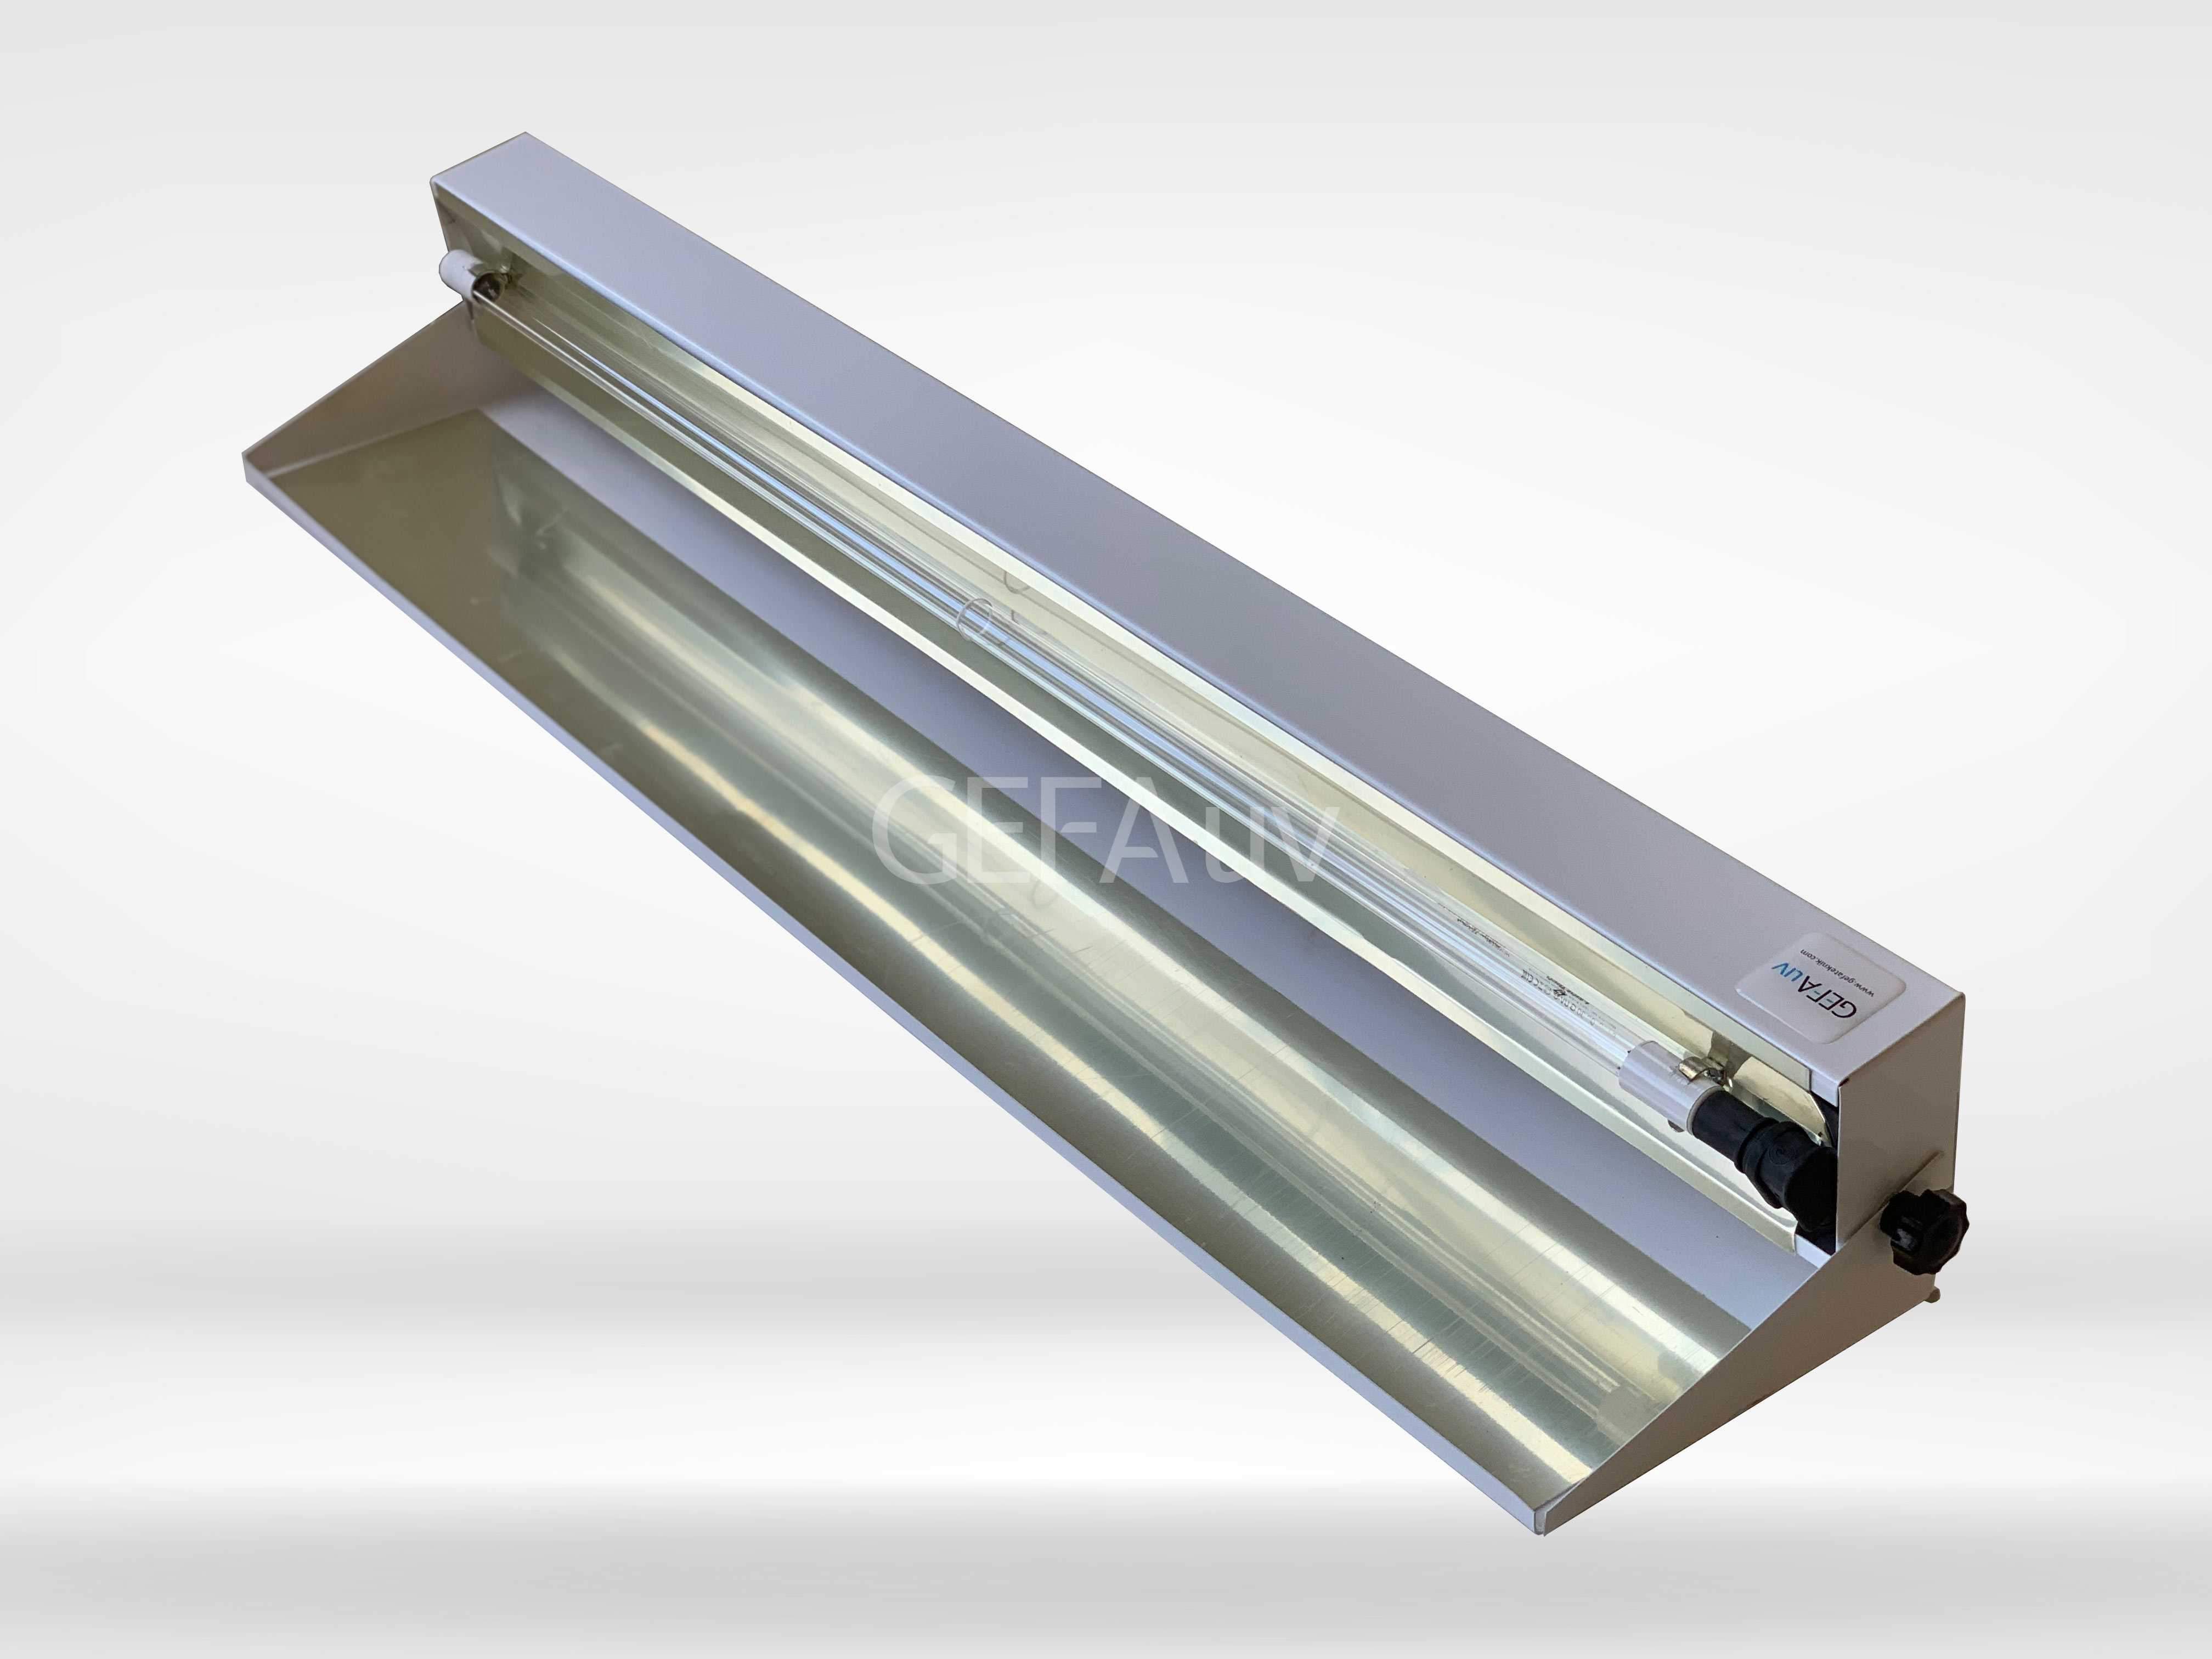 UVC Ultraviolet Air and Surface Sterilization Lamp